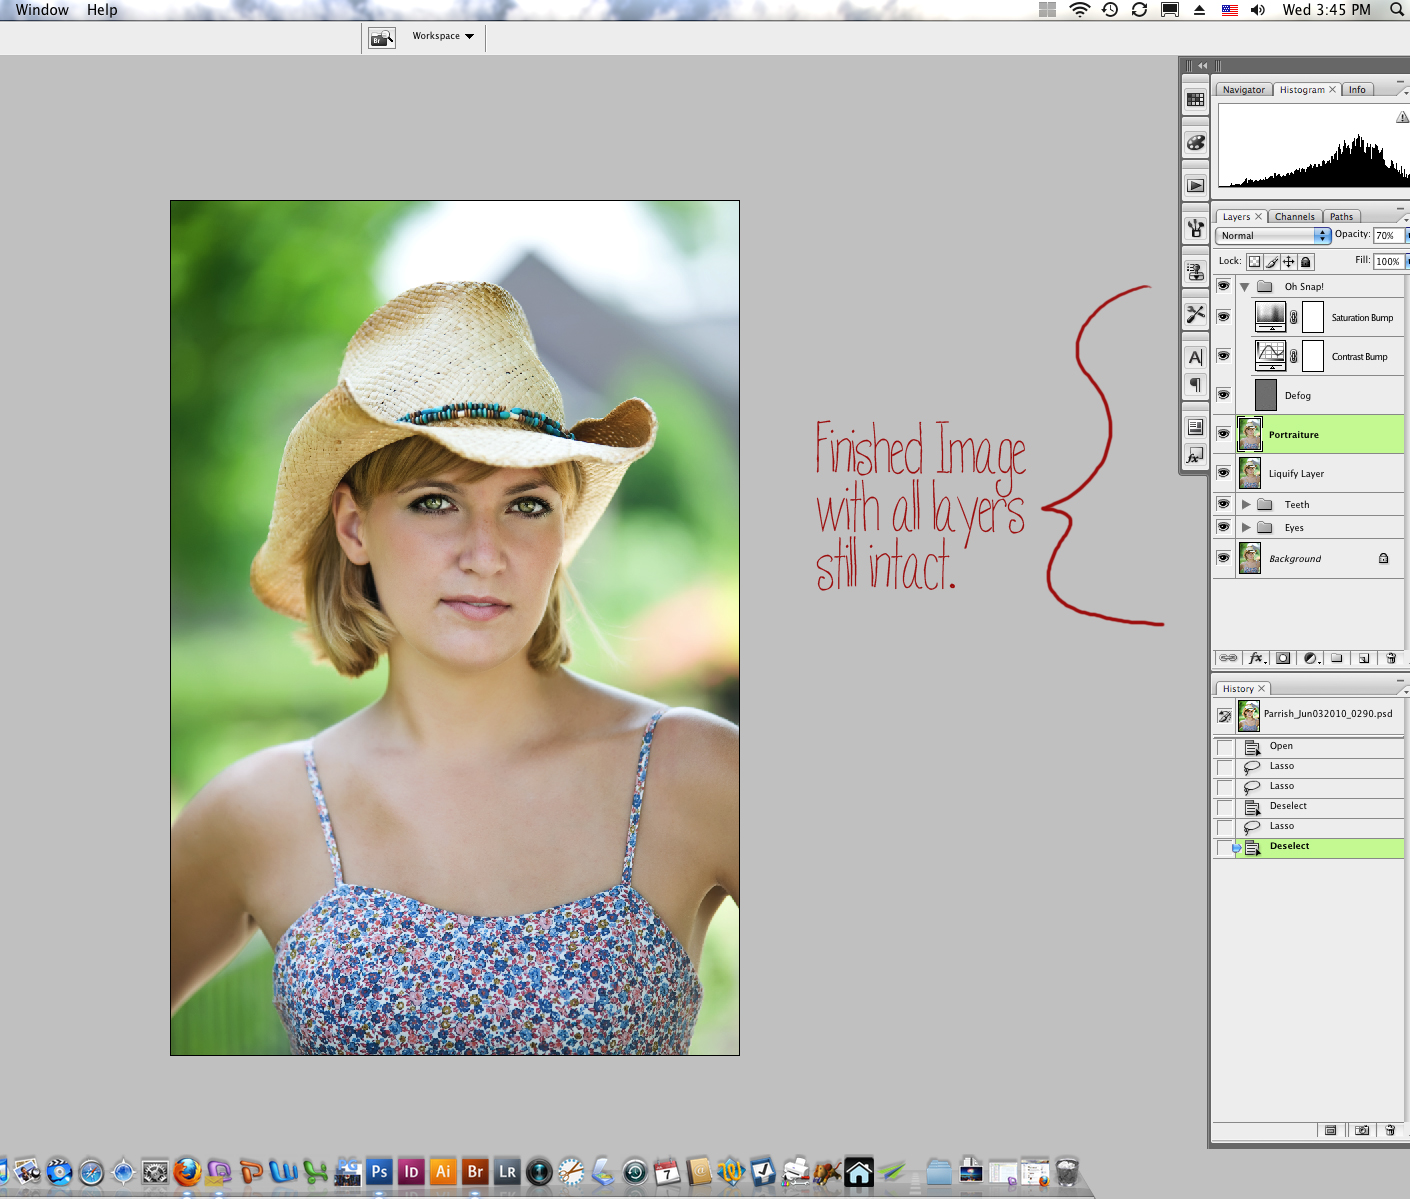 13-Layers Digital Workflow Using Photoshop and Adobe Camera Raw and Bridge Guest Bloggers Photoshop Tips & Tutorials